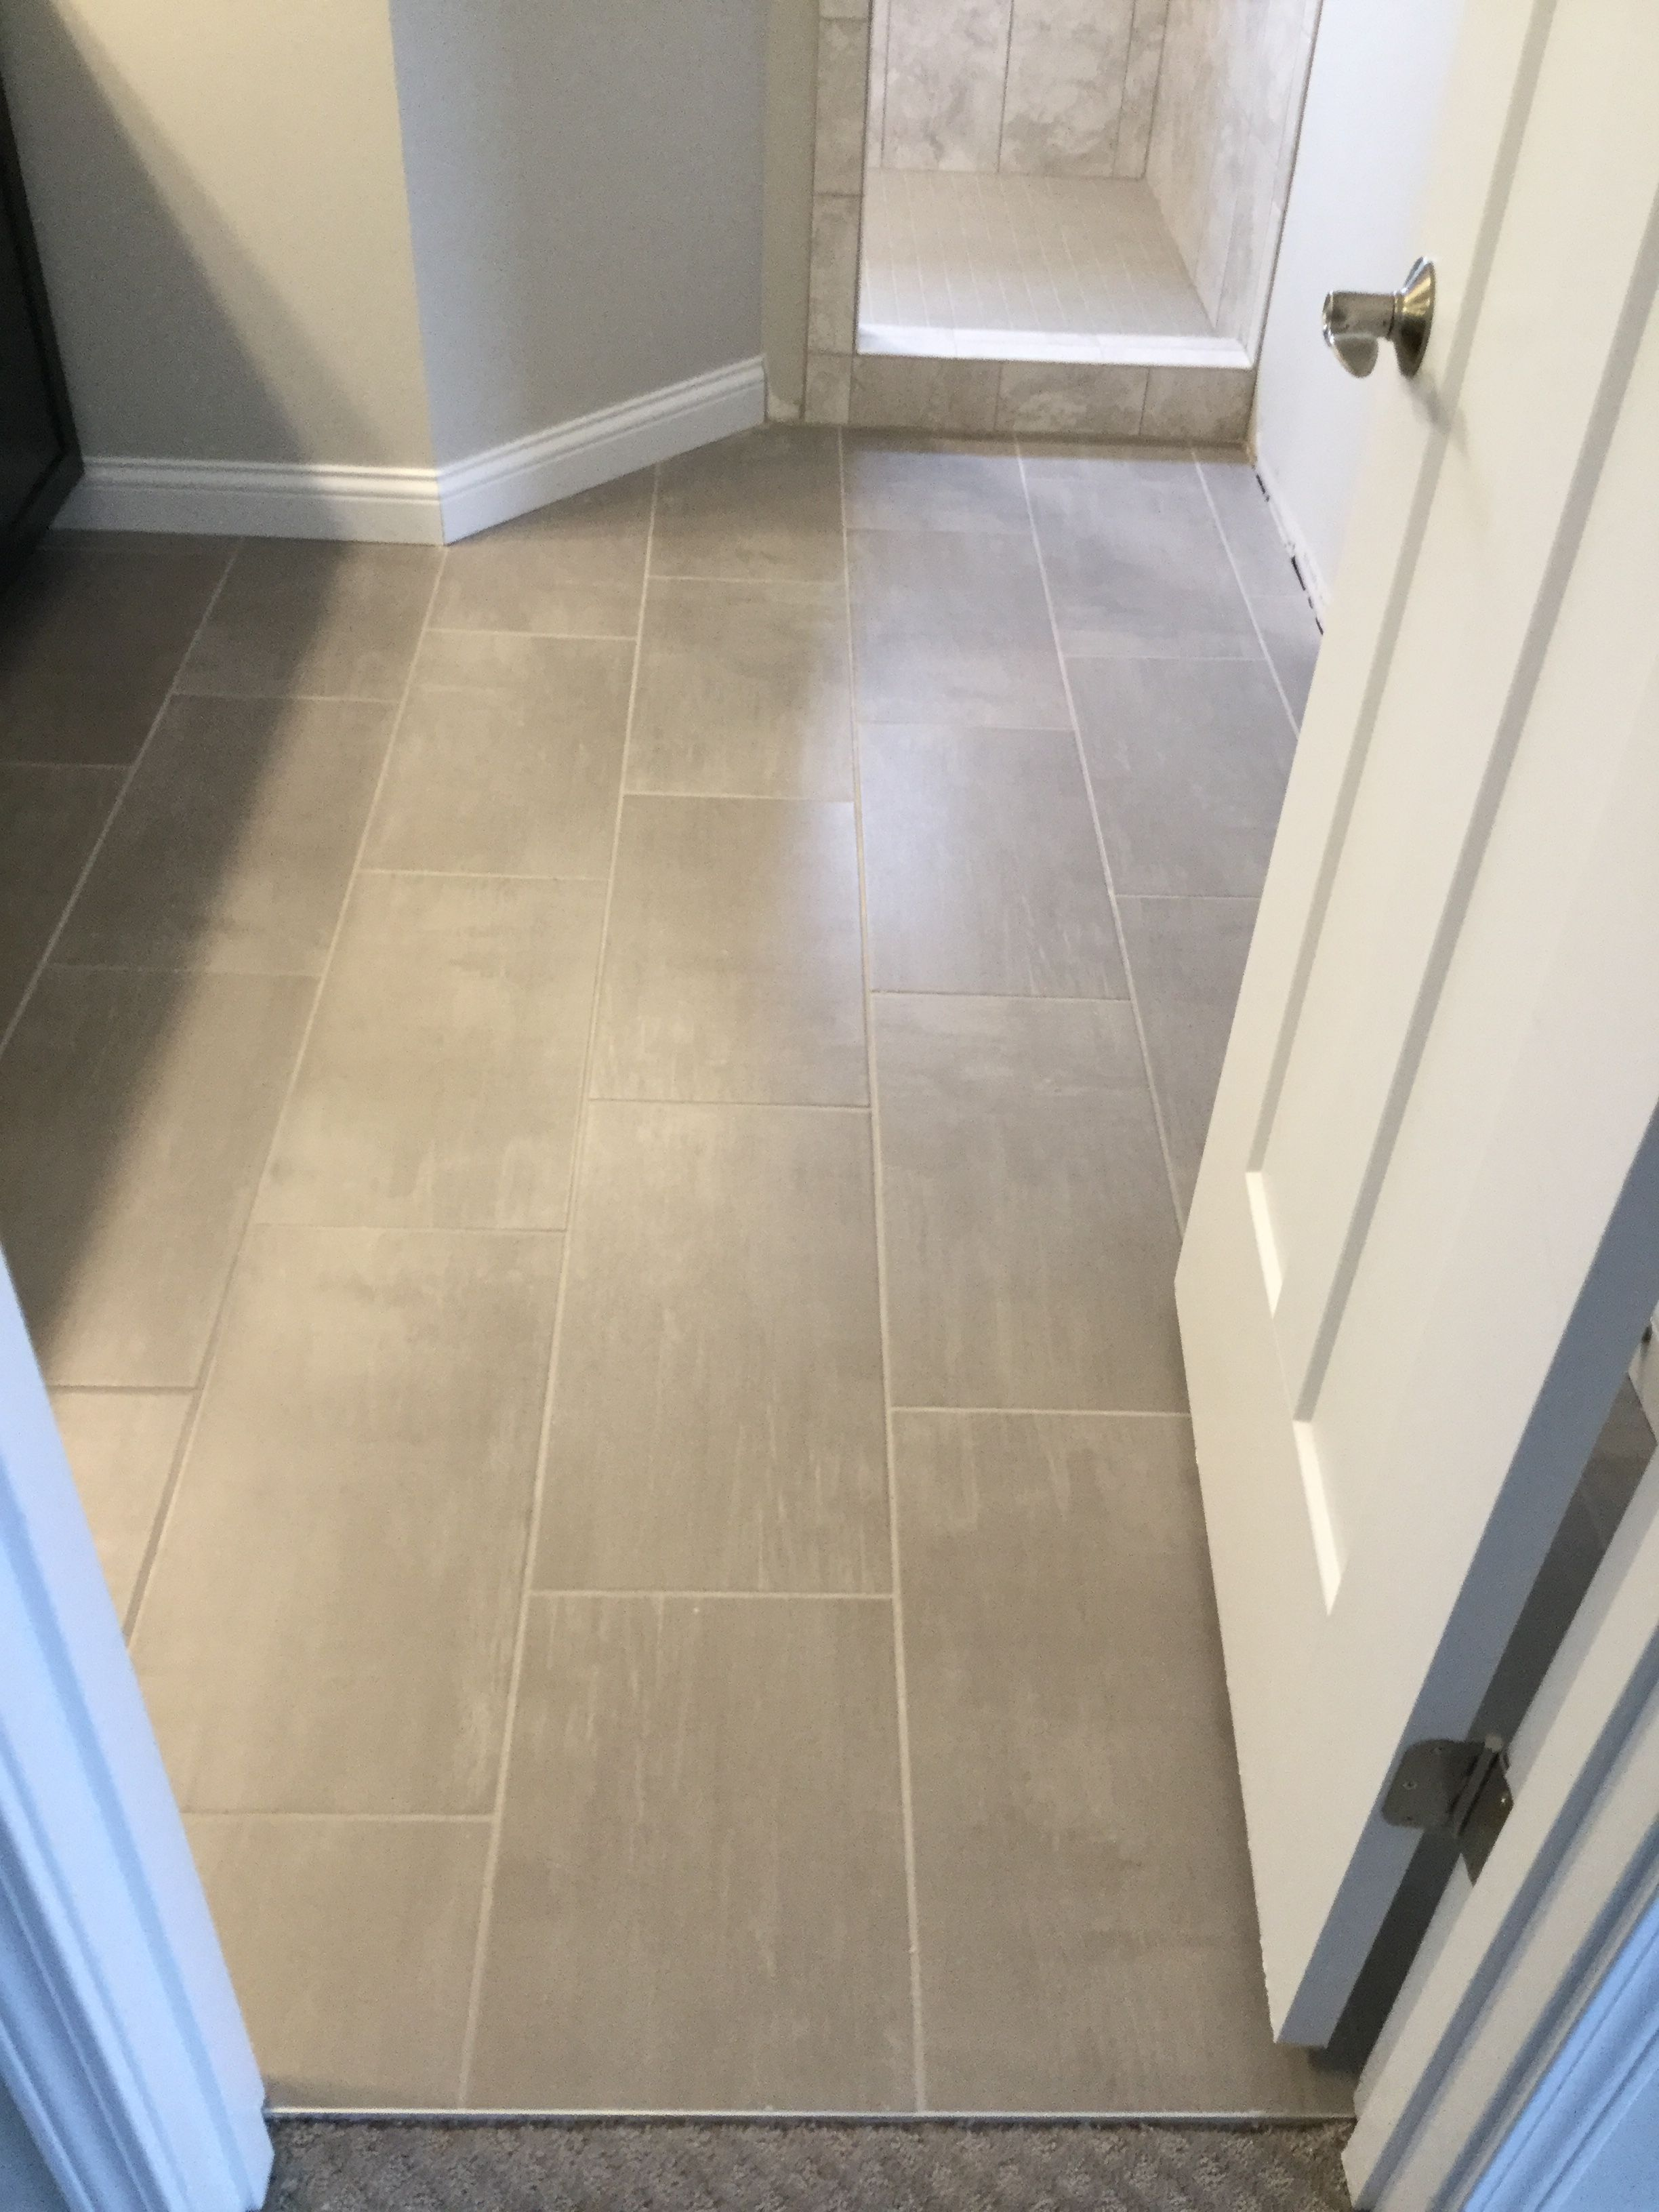 Skybridge 12x24 Gray Floor Tile Grey Flooring Kitchen Floor Tile Patterns Grey Floor Tiles